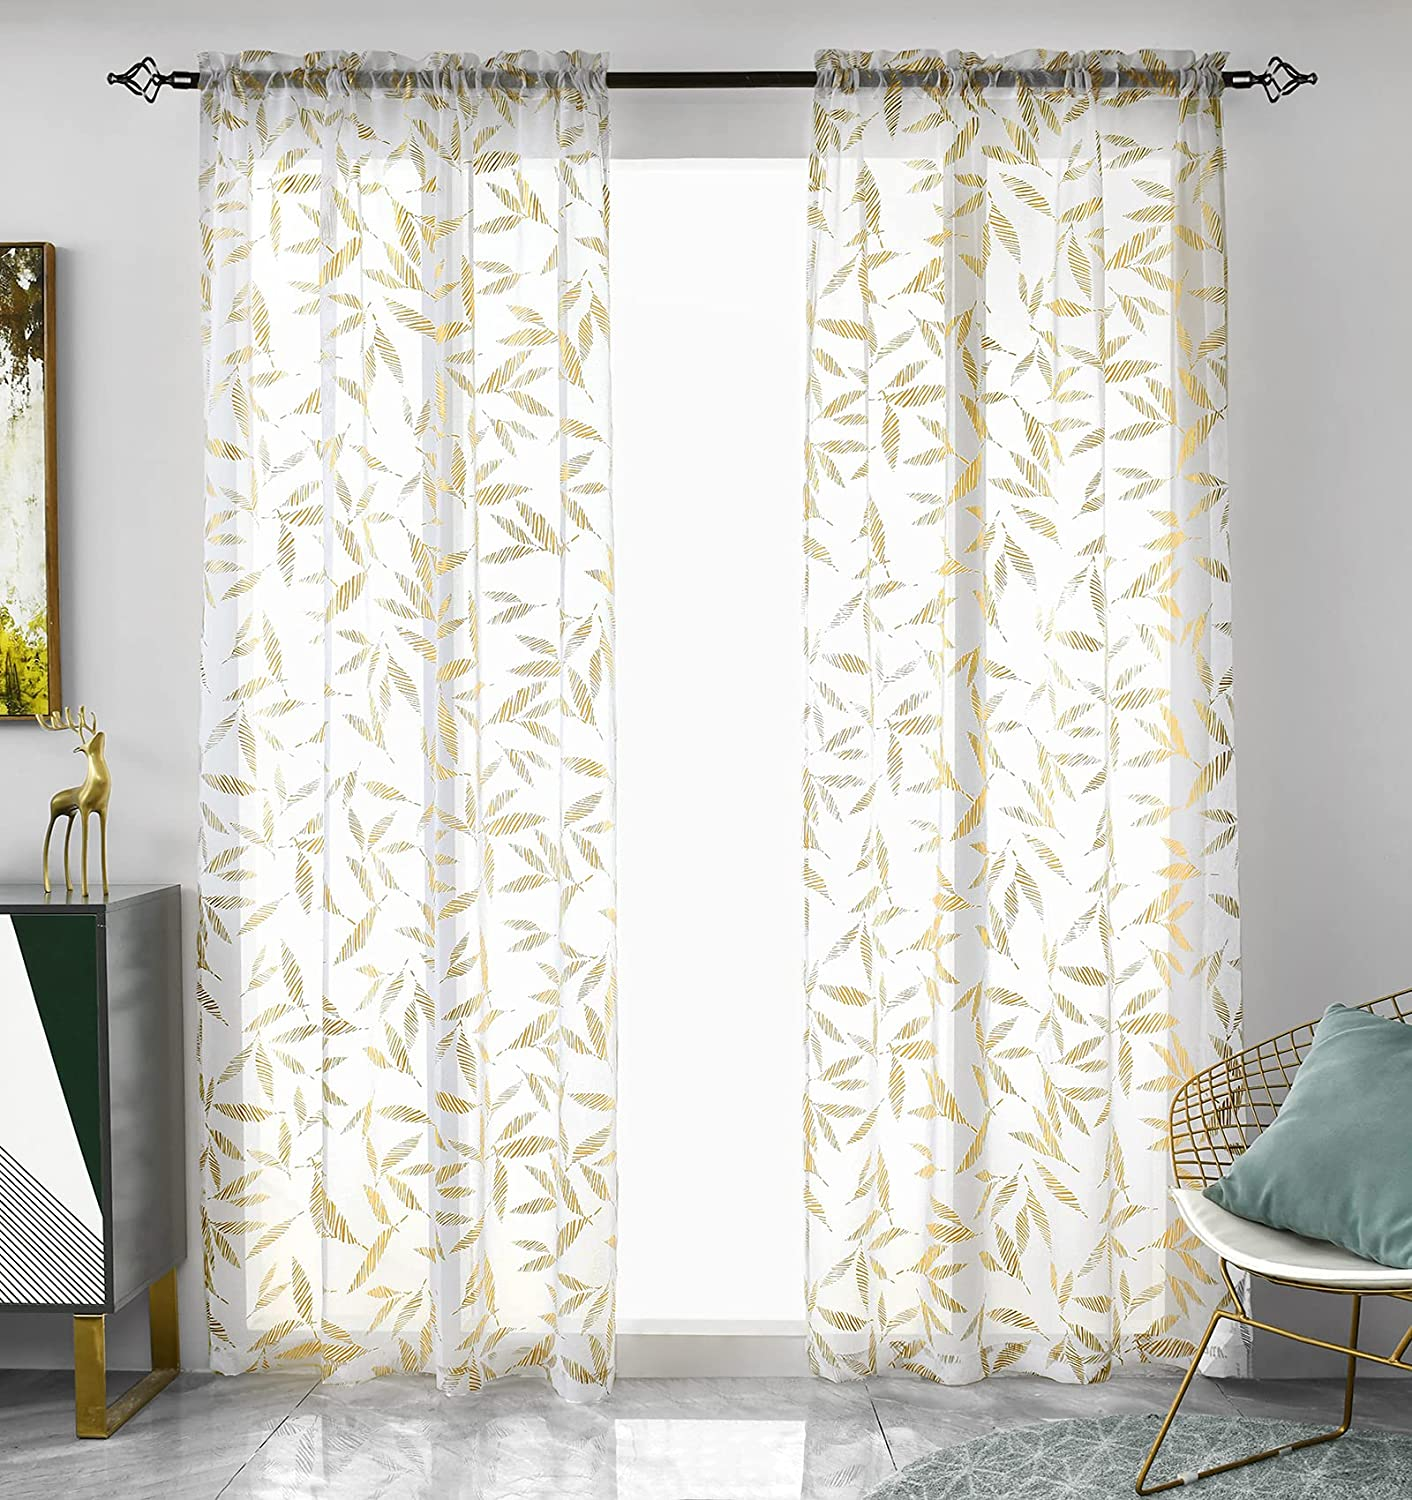 Window Sheer Curtains 84 Inch Length Set 2 Max 83% OFF Panels White Ranking TOP10 C